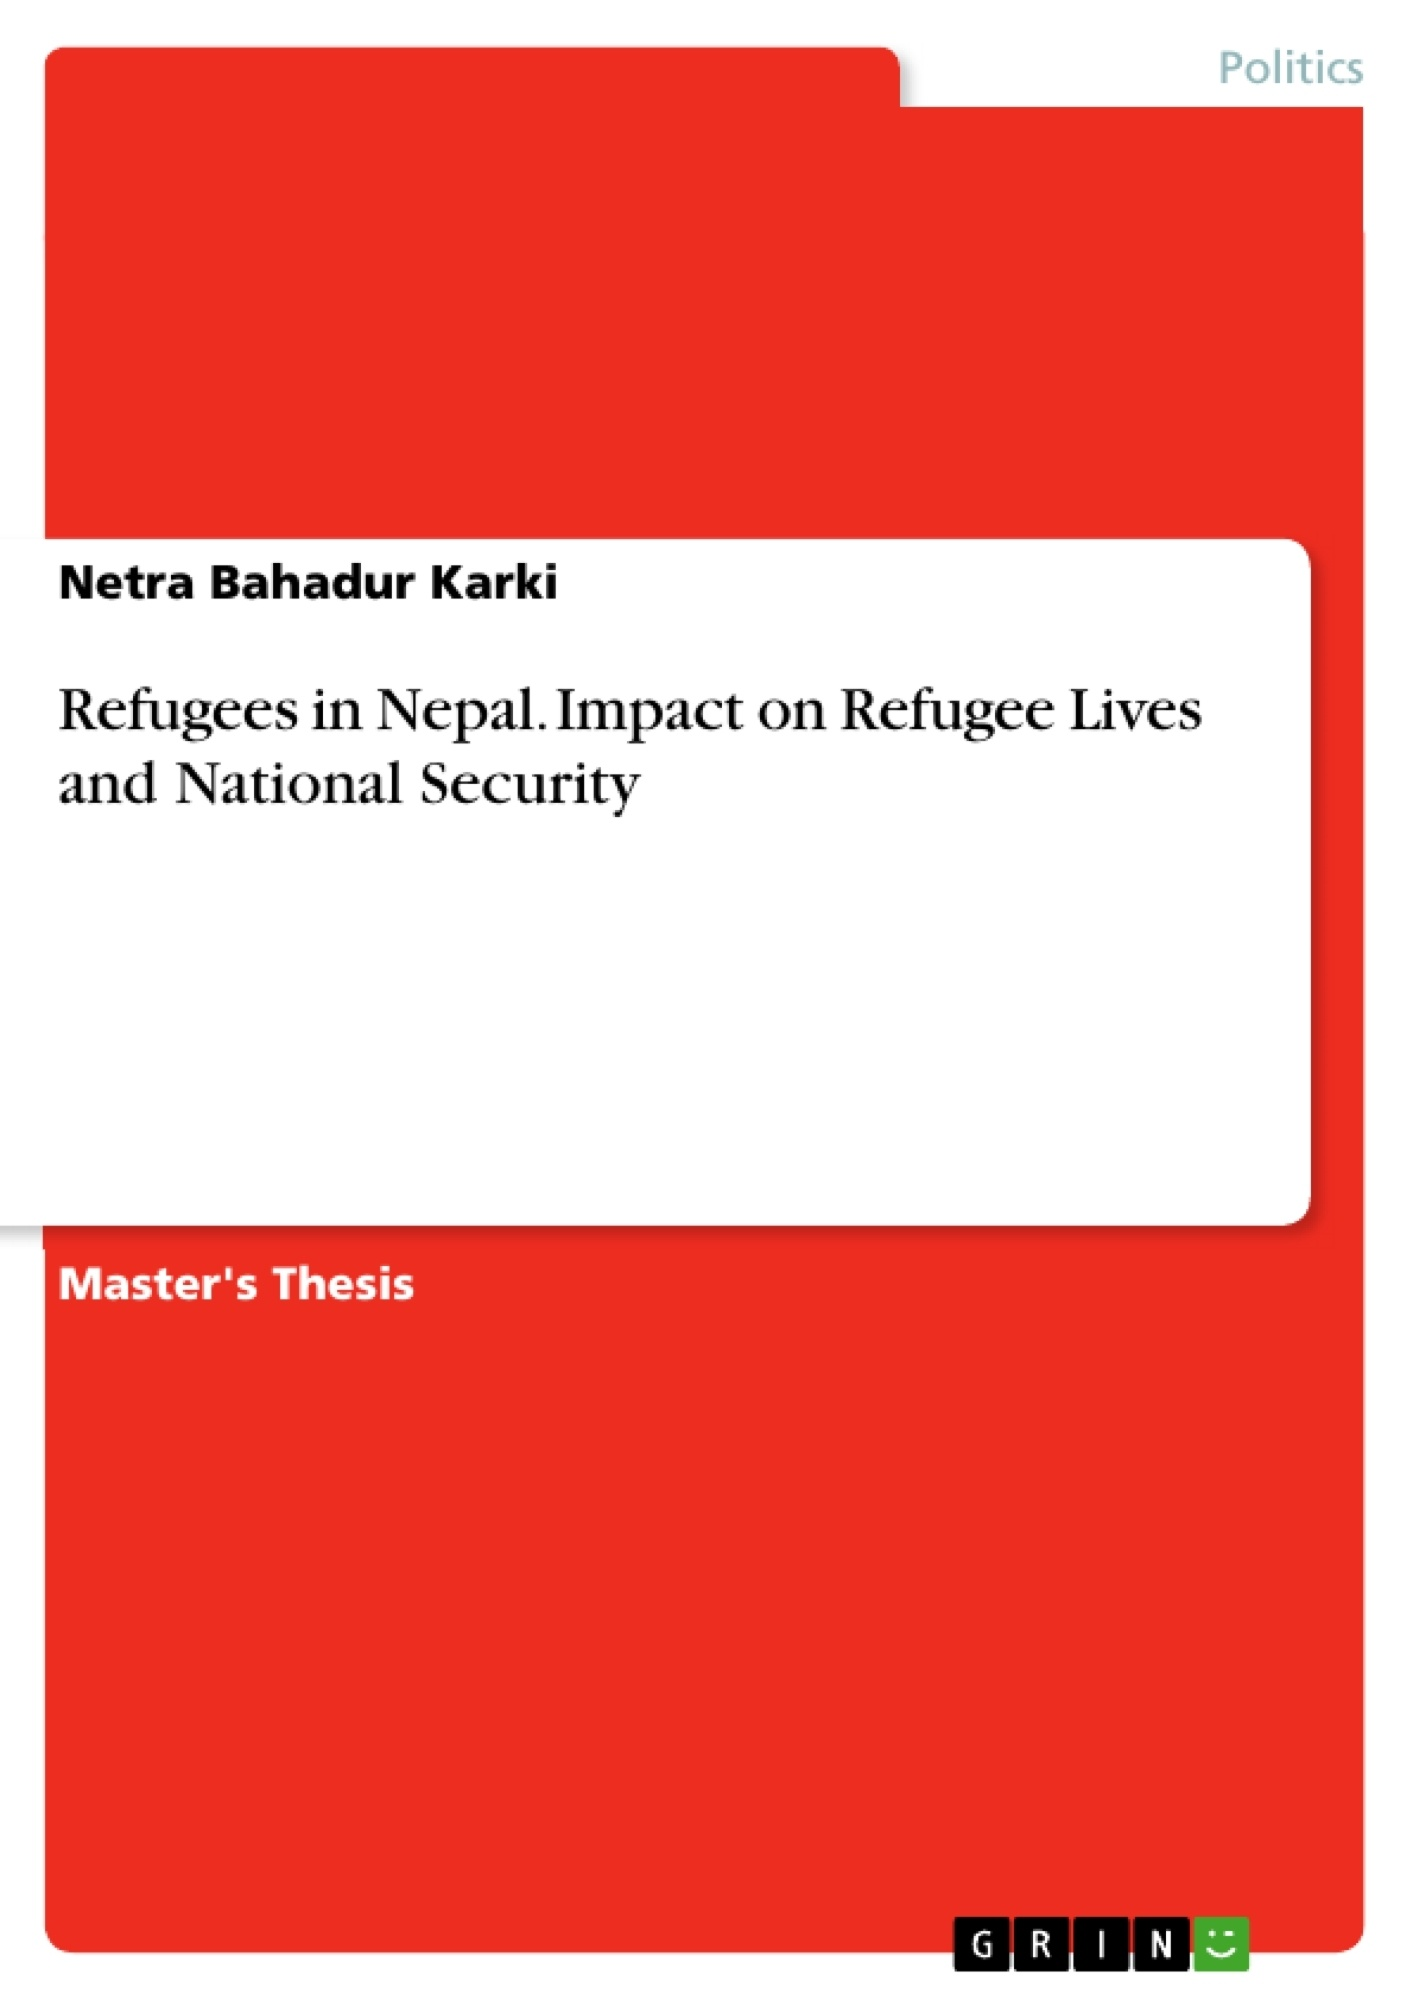 Title: Refugees in Nepal. Impact on Refugee Lives and National Security